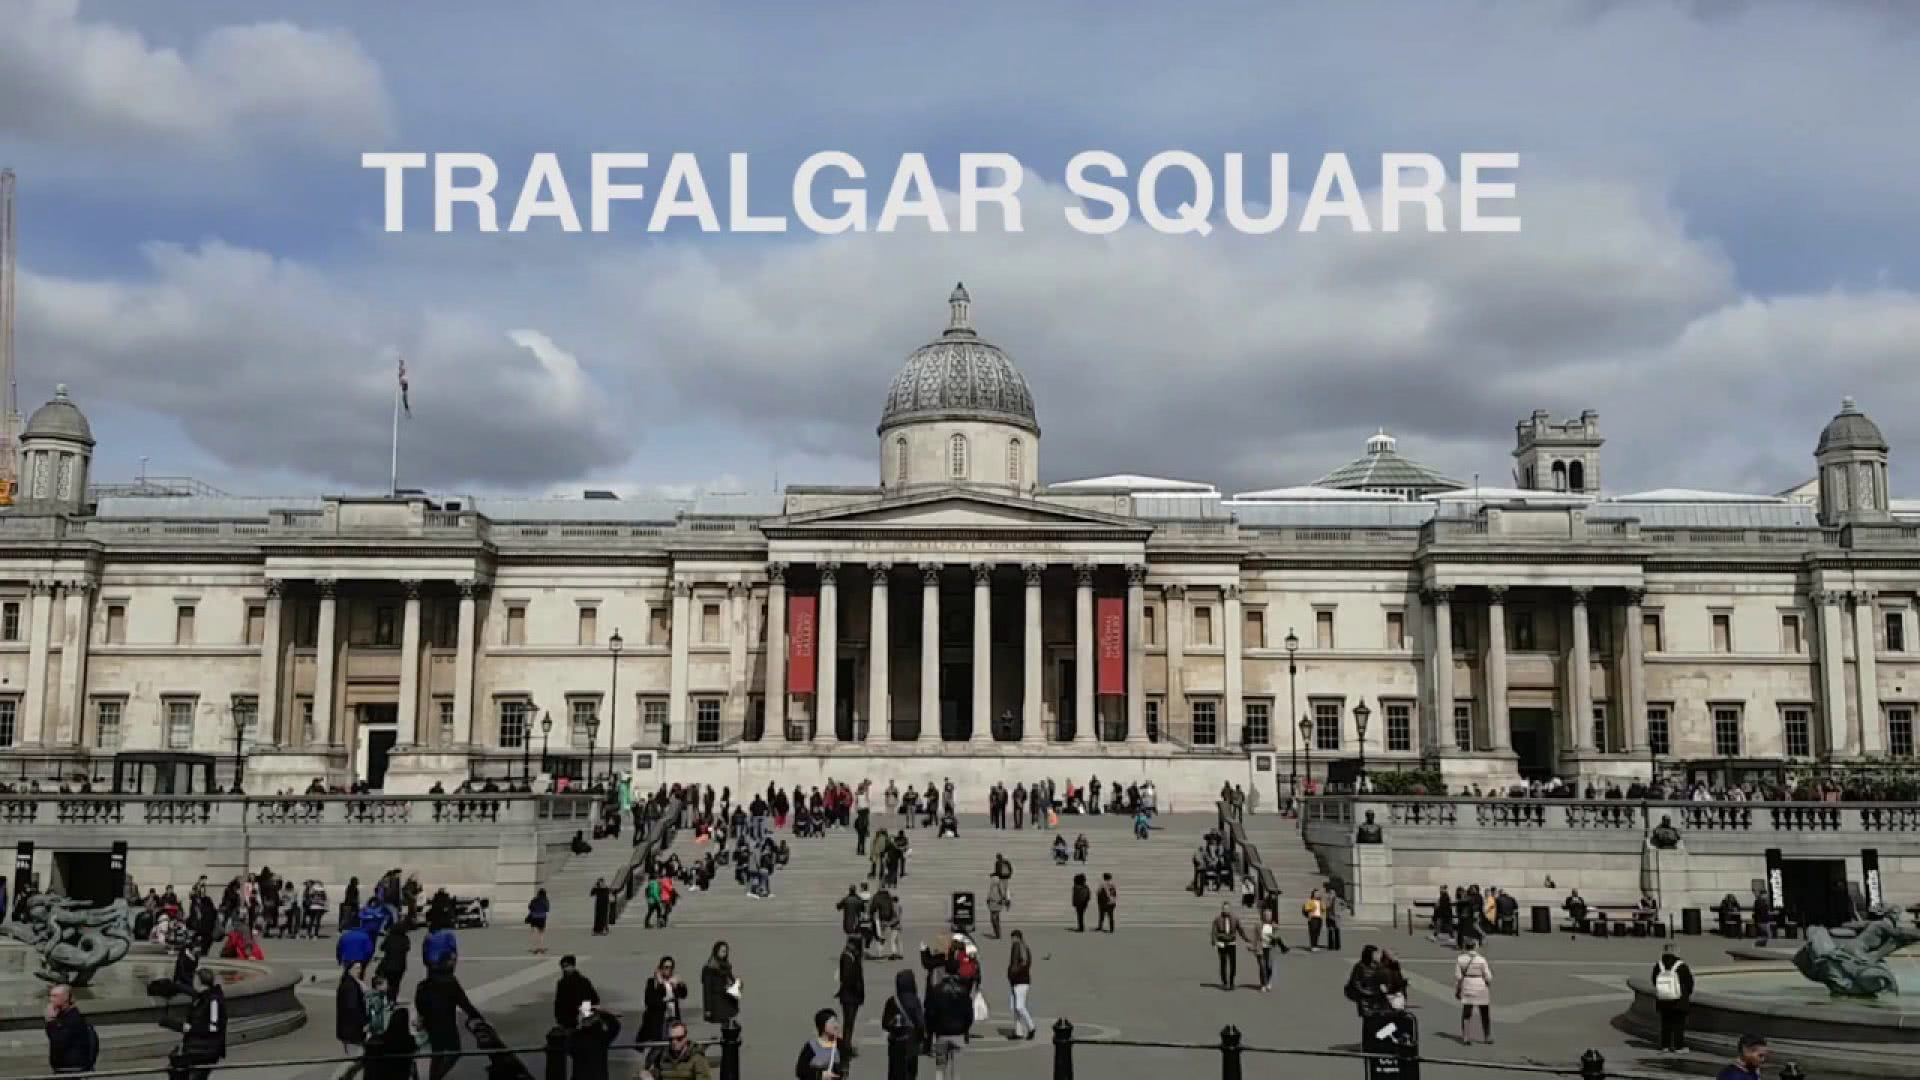 Guide to Trafalgar Square